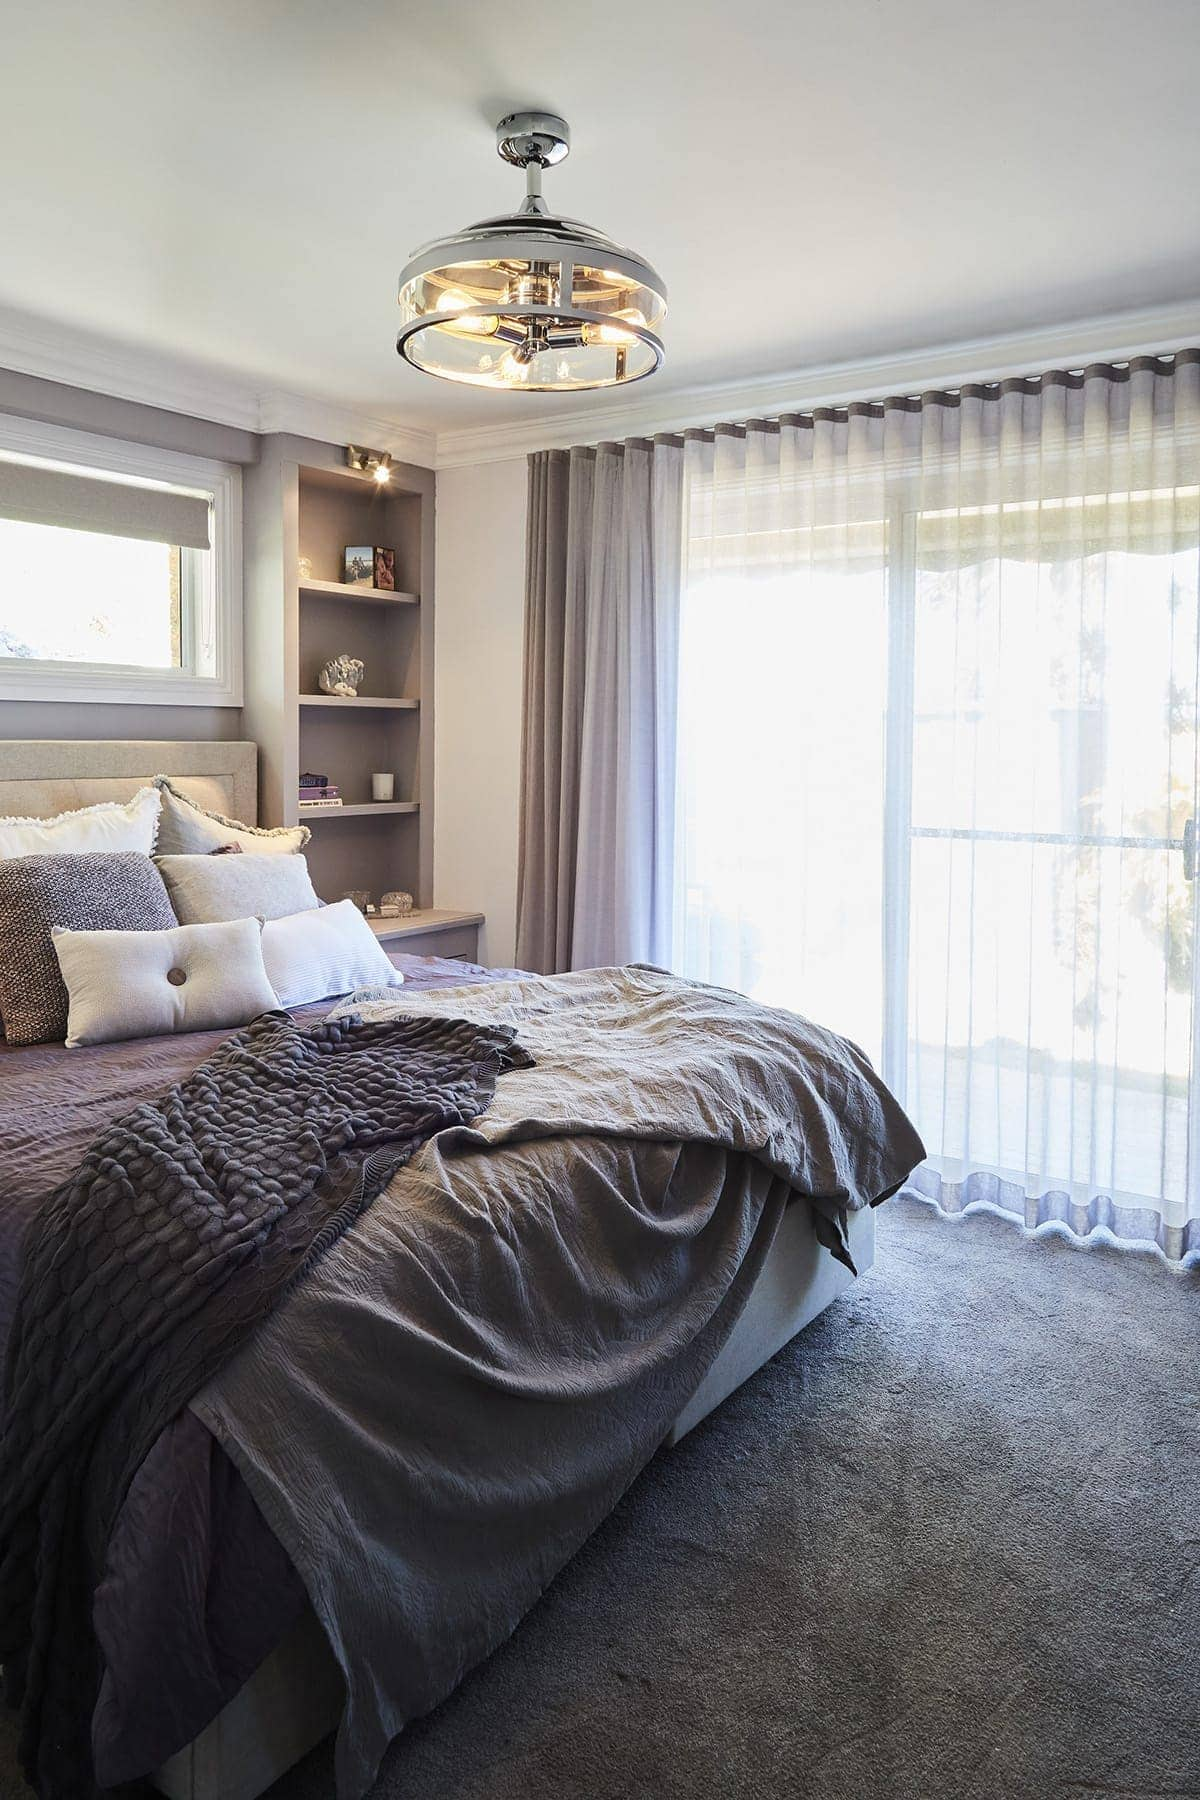 house rules 2018 kim and michelle violet bedroom with grey carpet